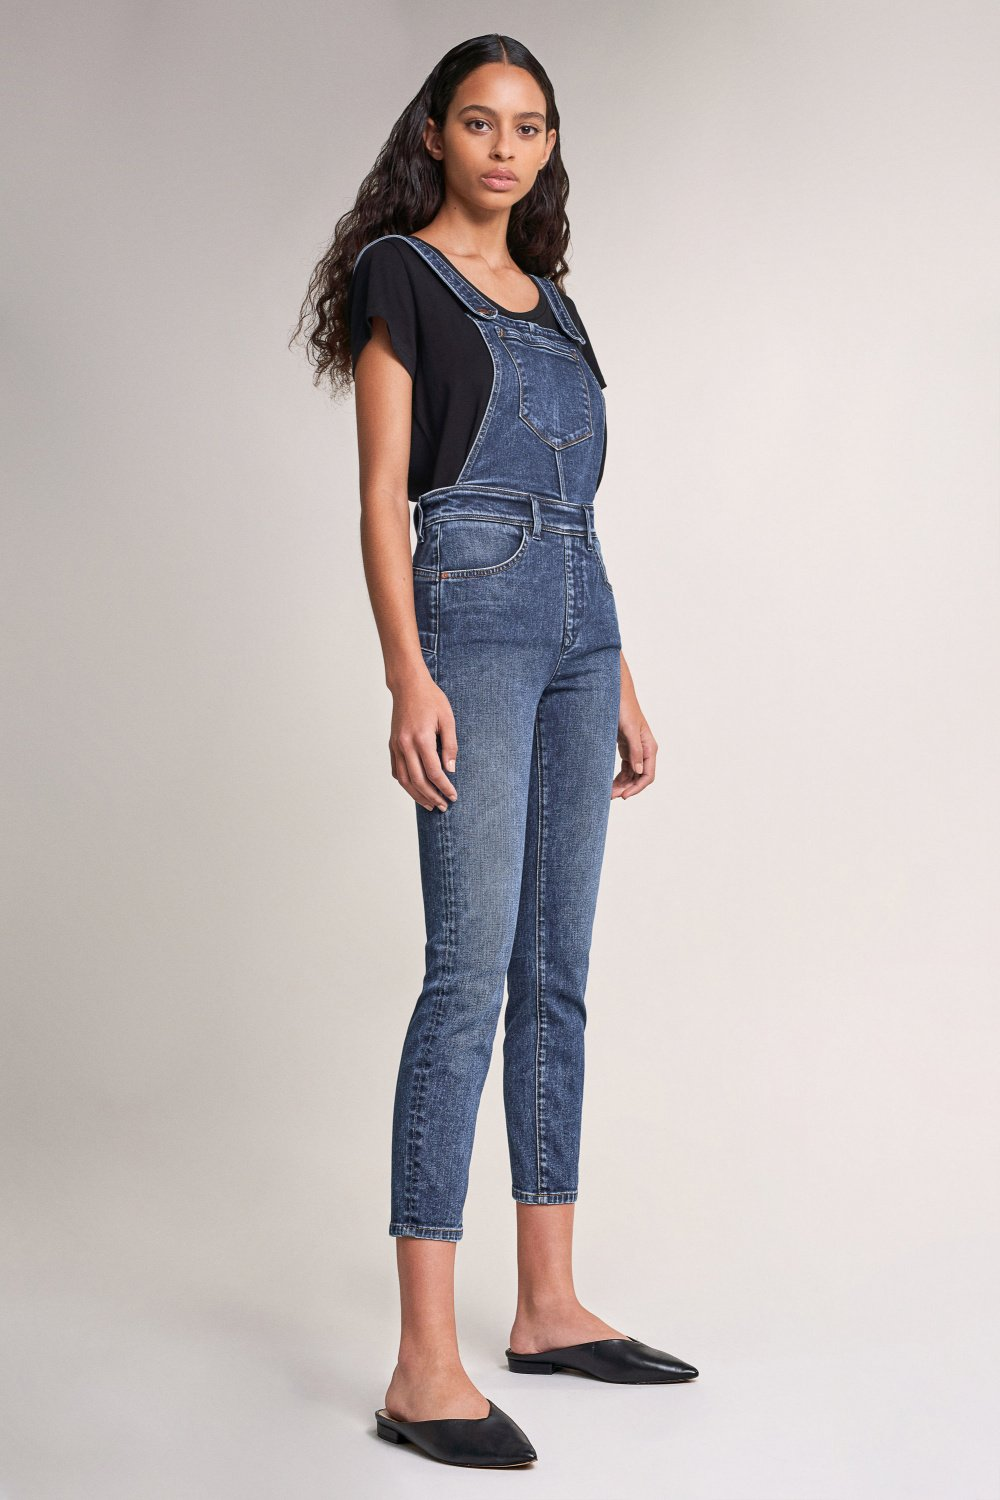 Push in Secret Glamour dungarees - Salsa